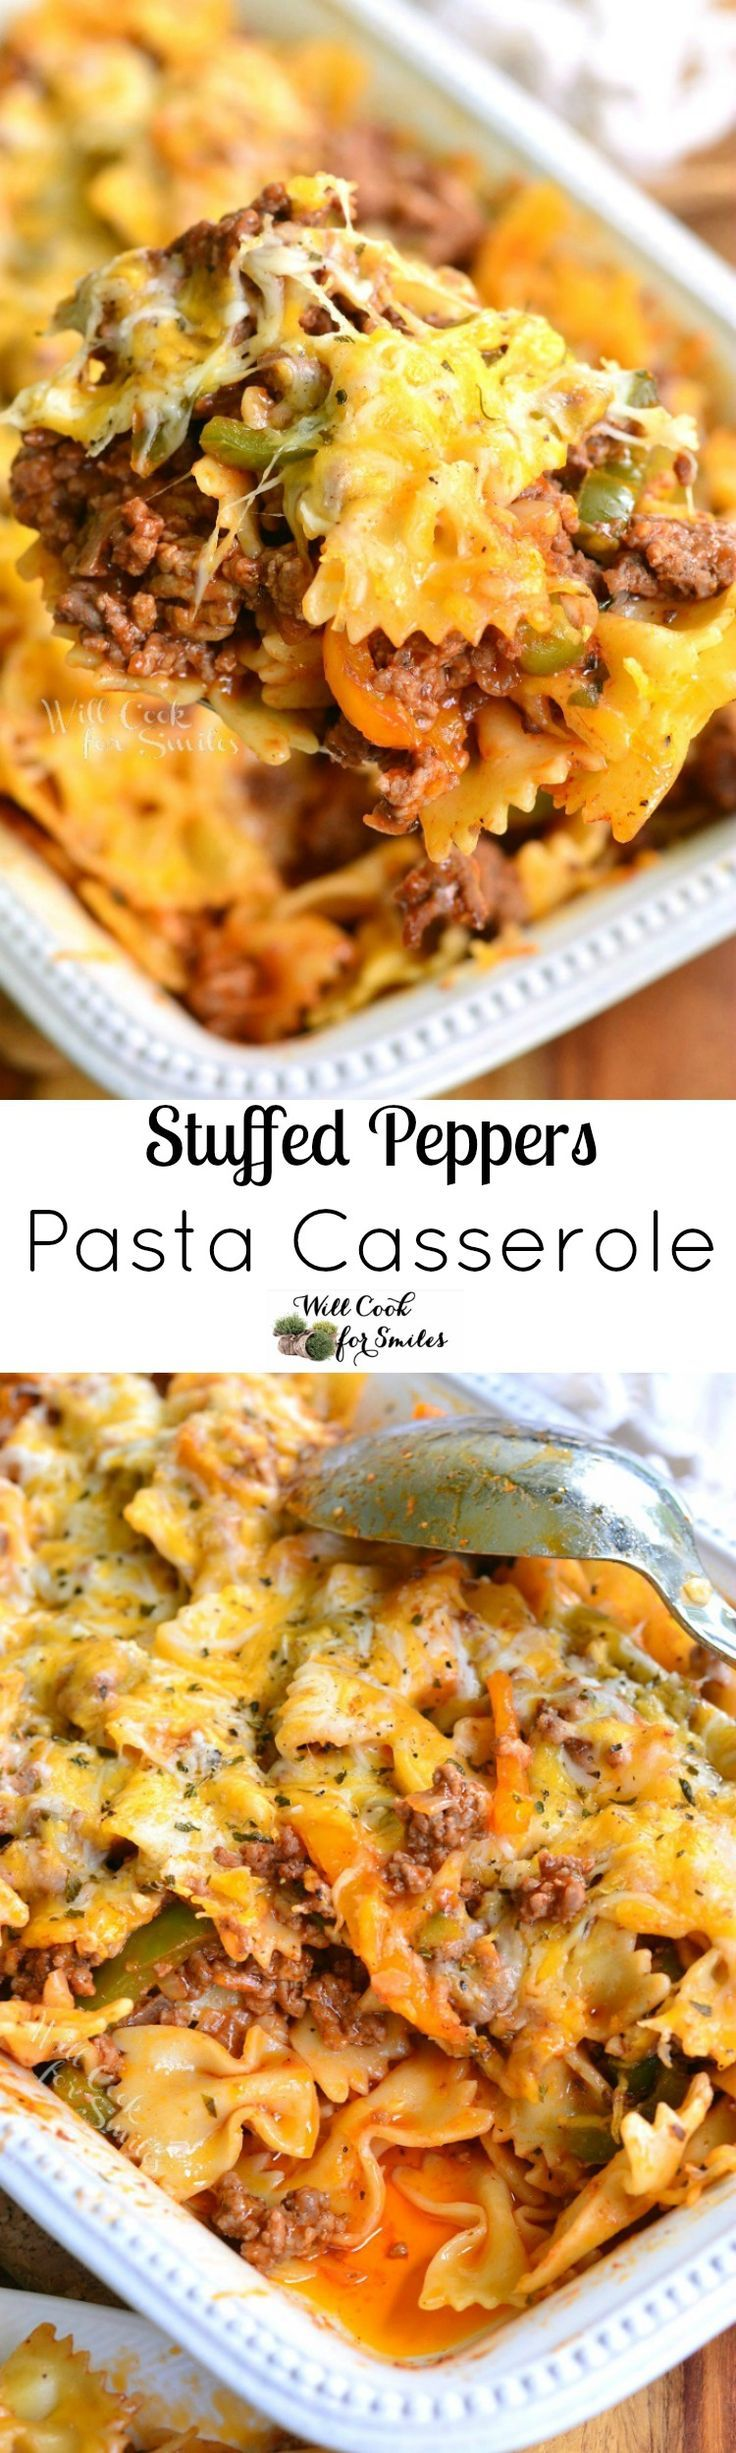 Stuffed Peppers Pasta Casserole. Inspired by the classic stuffed bell peppers dish, this comforting pasta casserole holds all those flavors inside. No need to choose, you can have two great dishes in one.